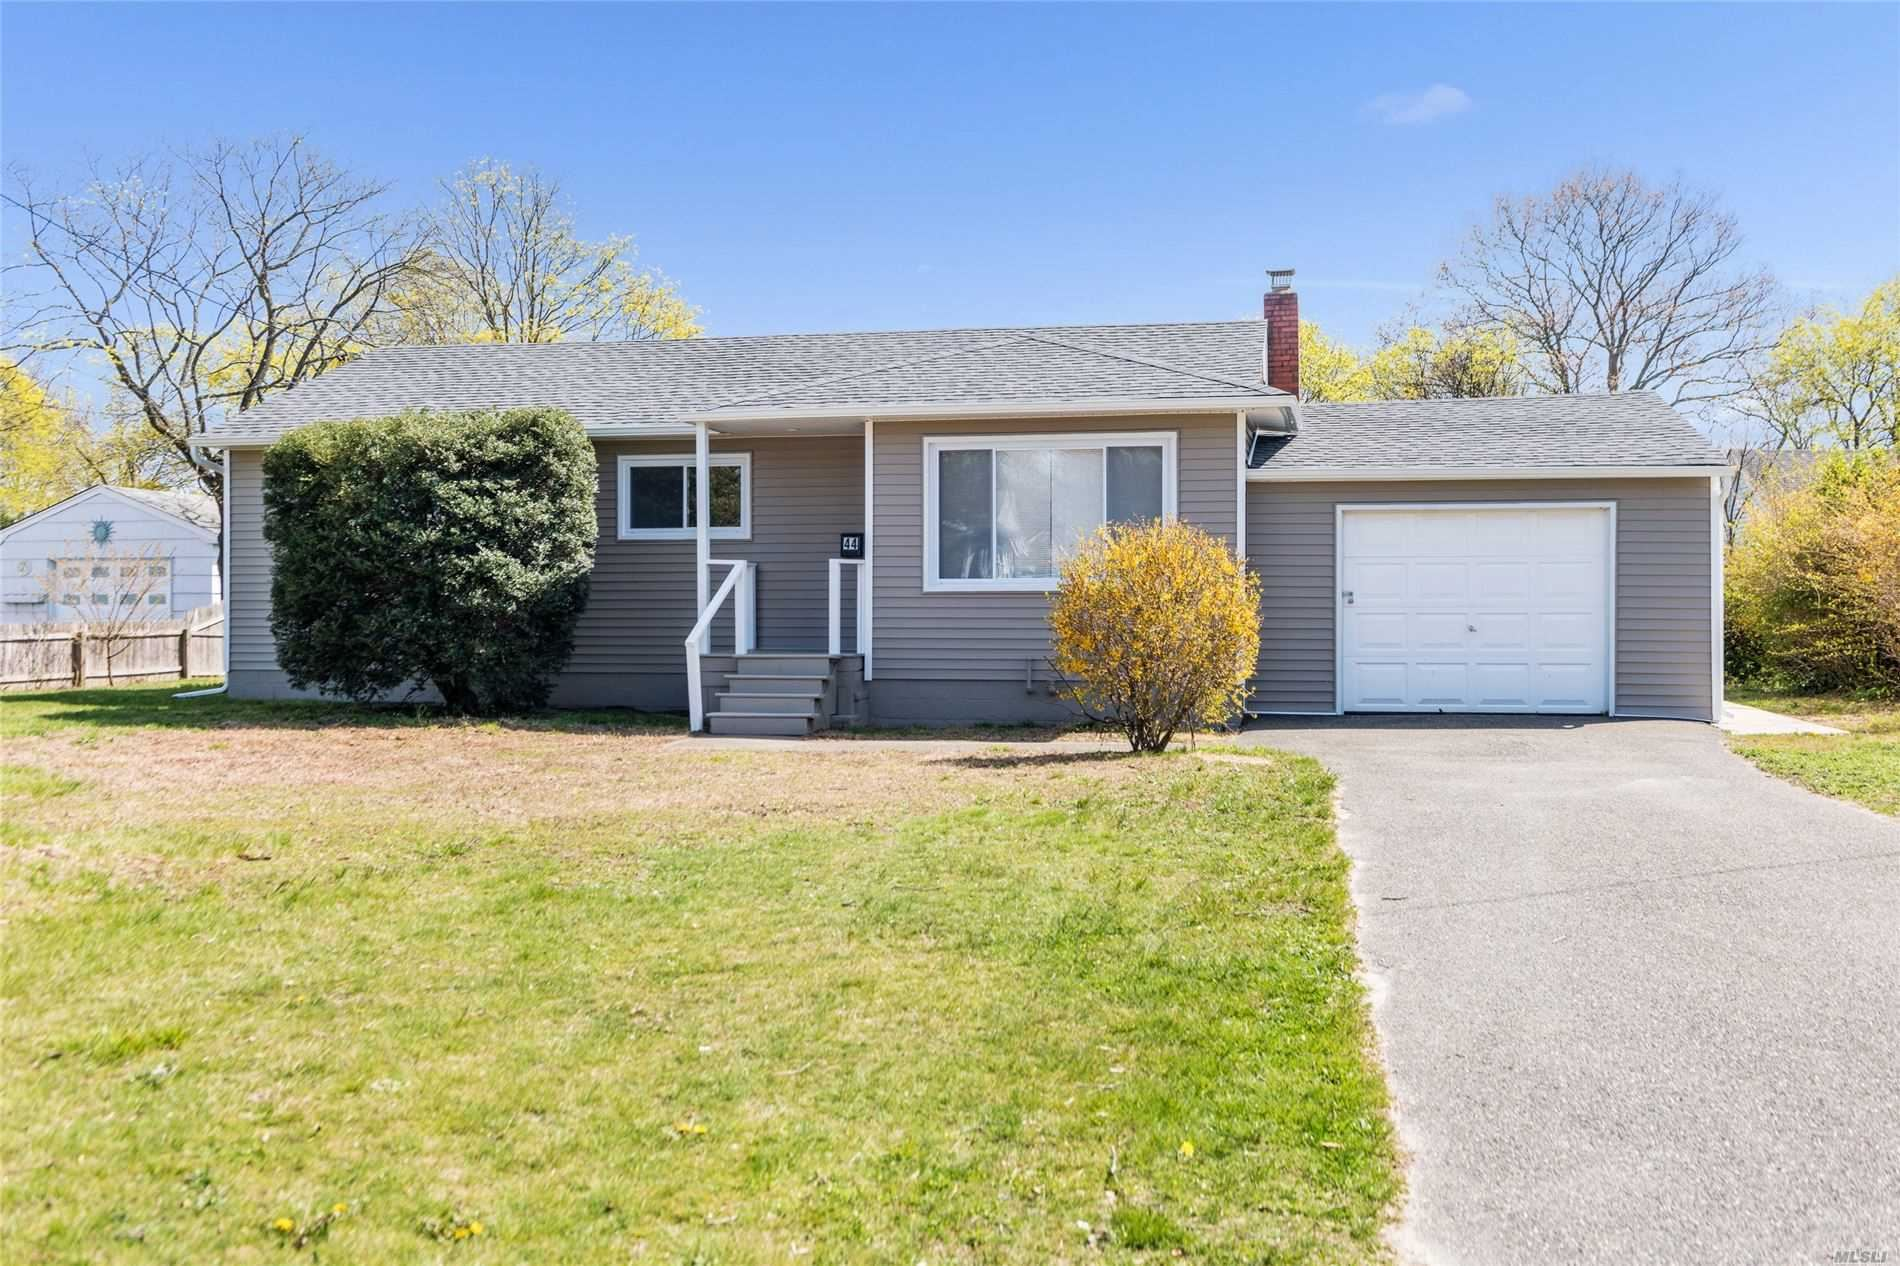 44 Sycamore St, Patchogue, NY 11772 - MLS#: 3212984